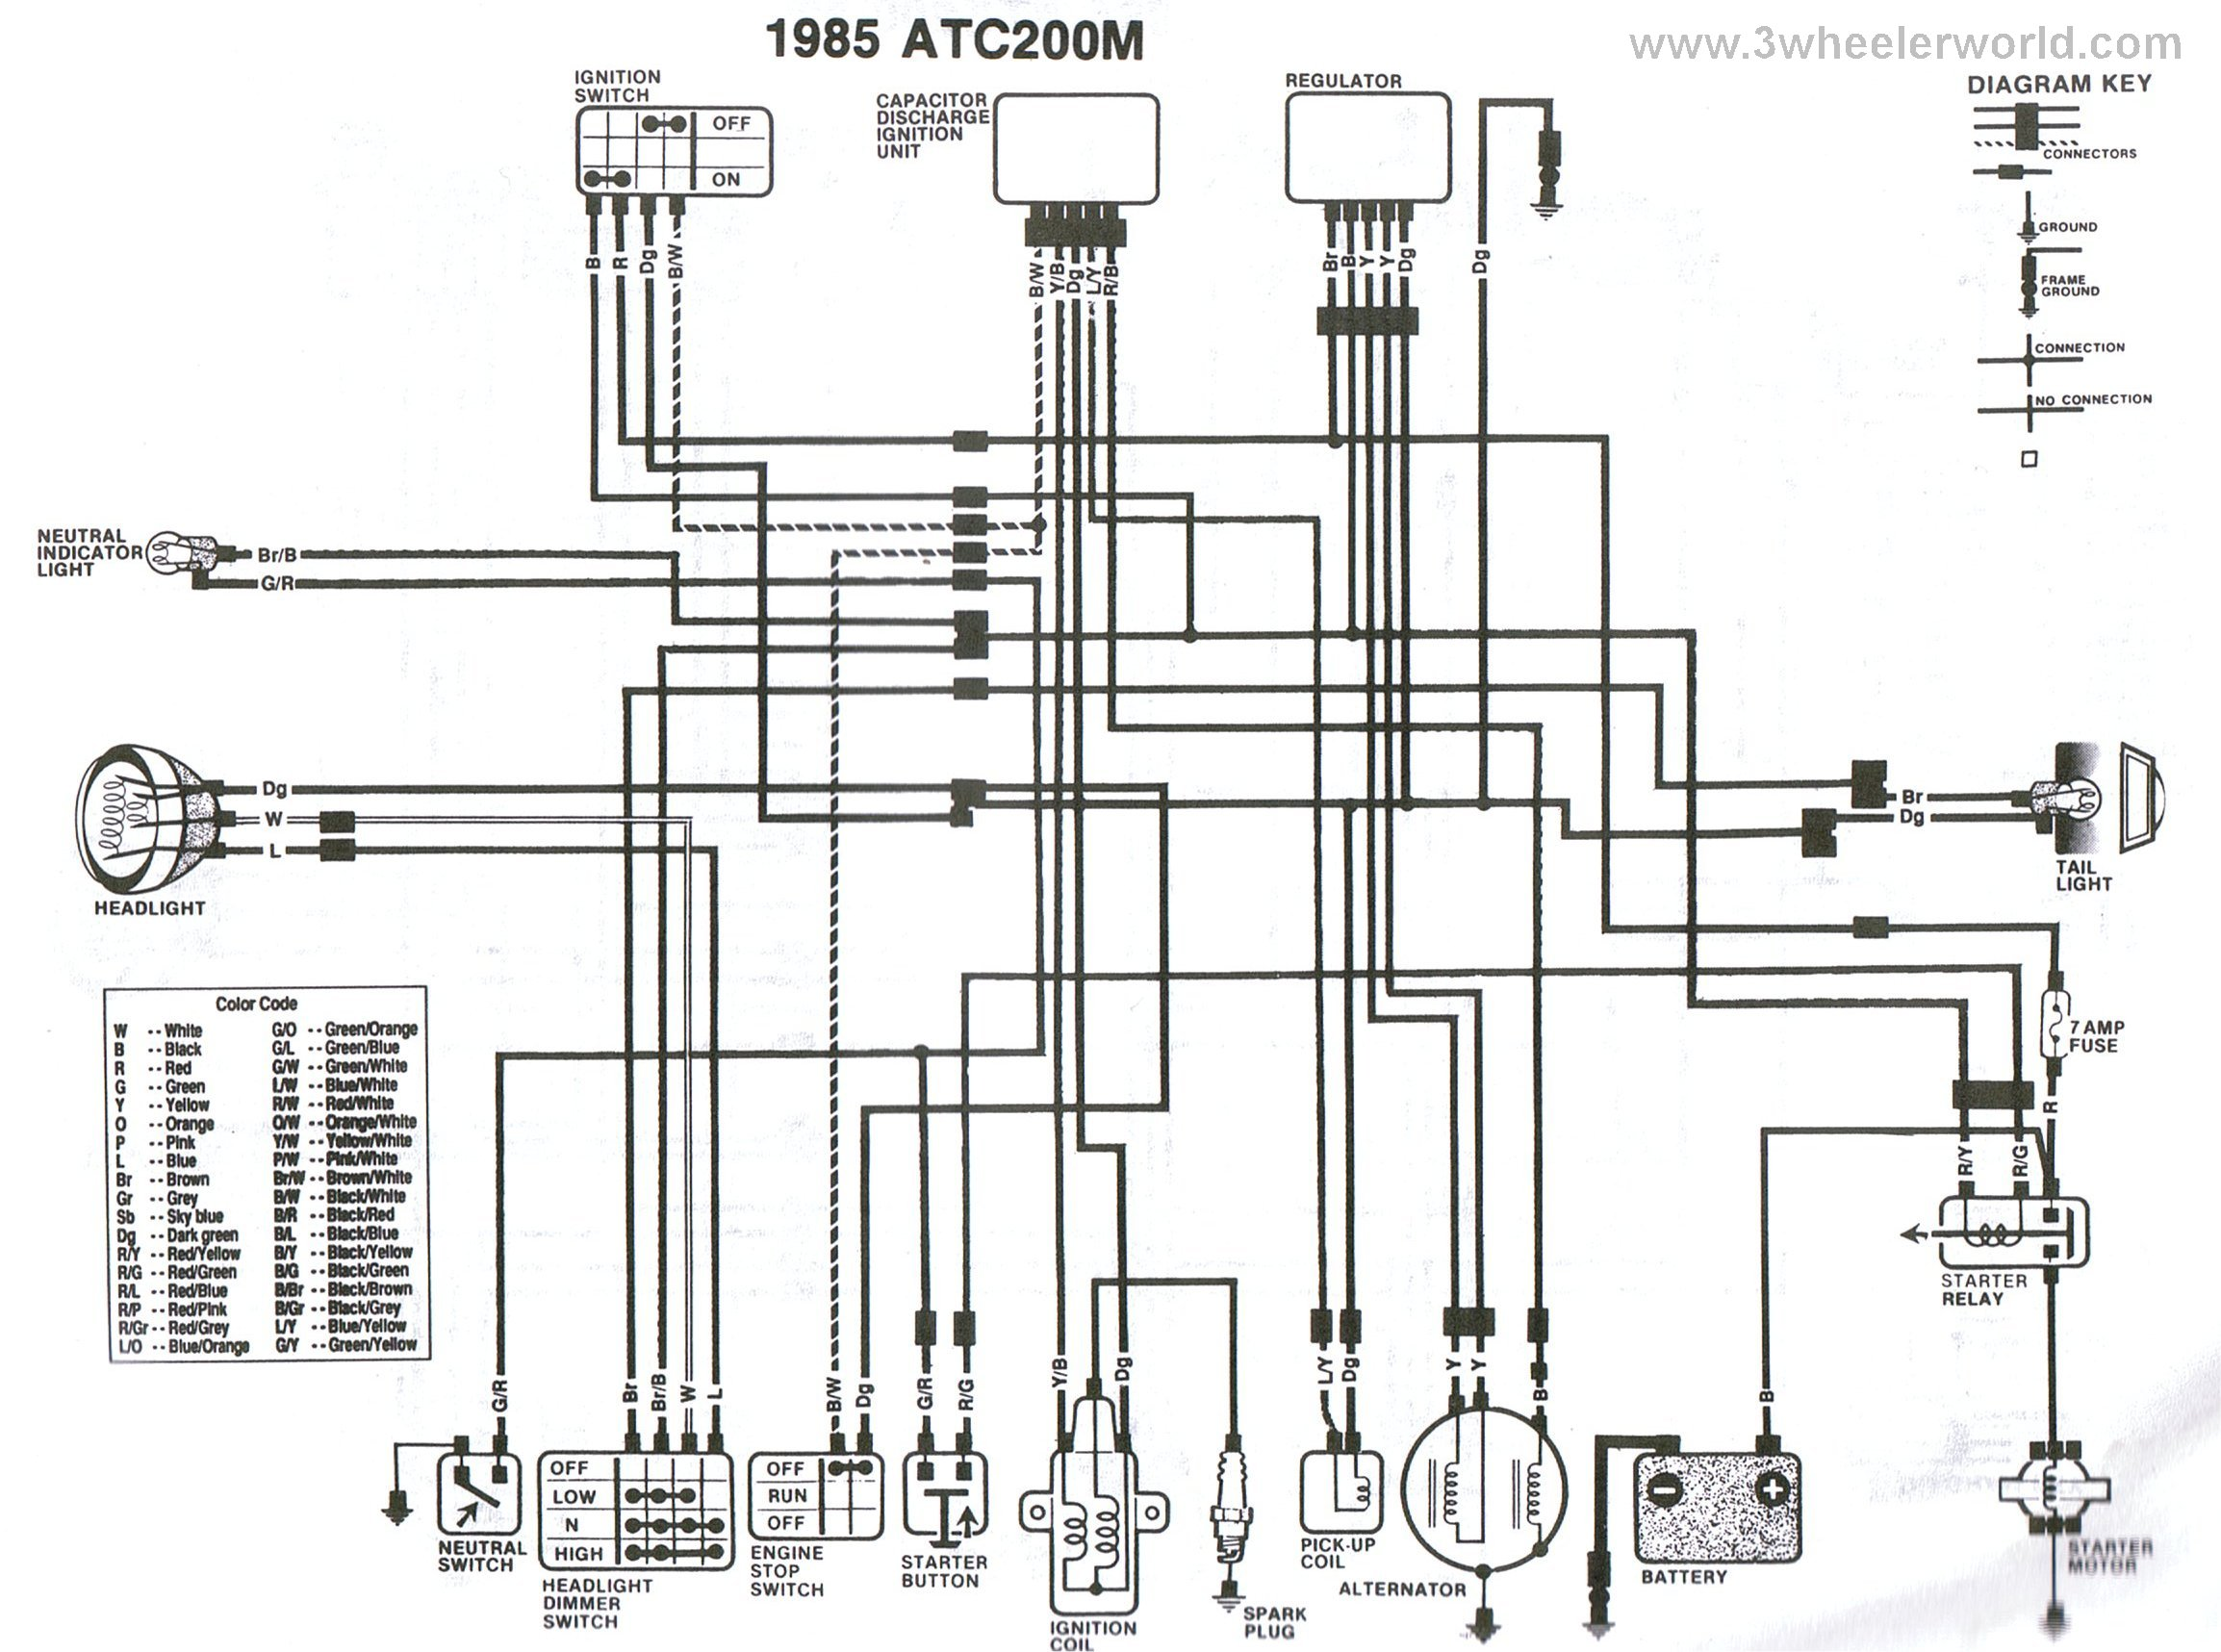 wiring diagram 1985 honda 200m diy enthusiasts wiring diagrams u2022 rh broadwaycomputers us Honda Trail 70 Wiring-Diagram Honda Trail 70 Wiring-Diagram